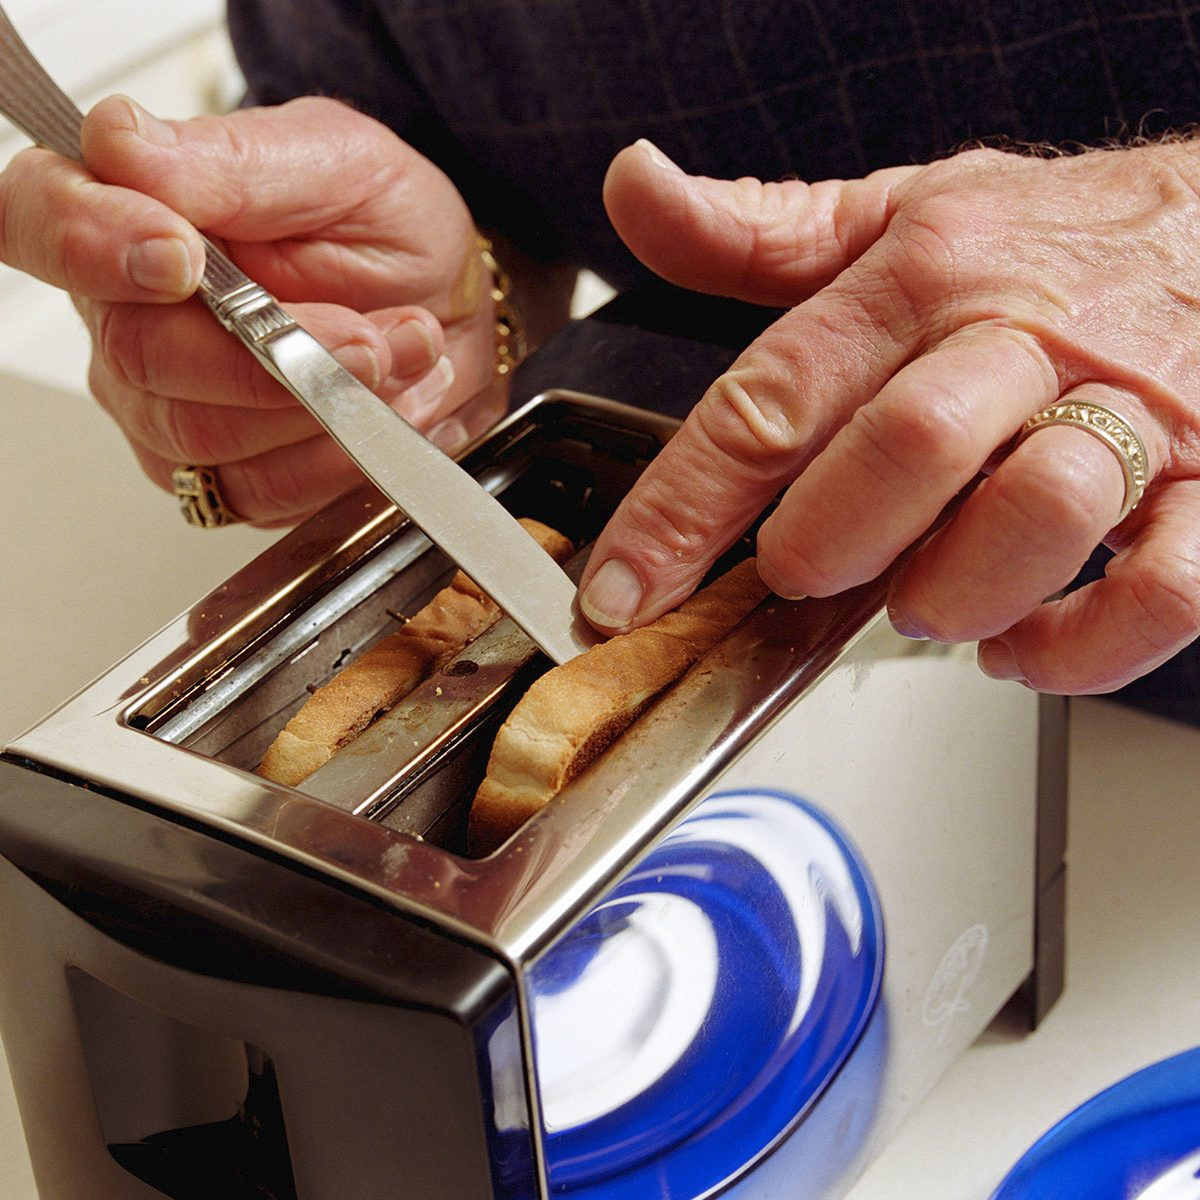 Senior man getting toast out of toaster with knife, close-up